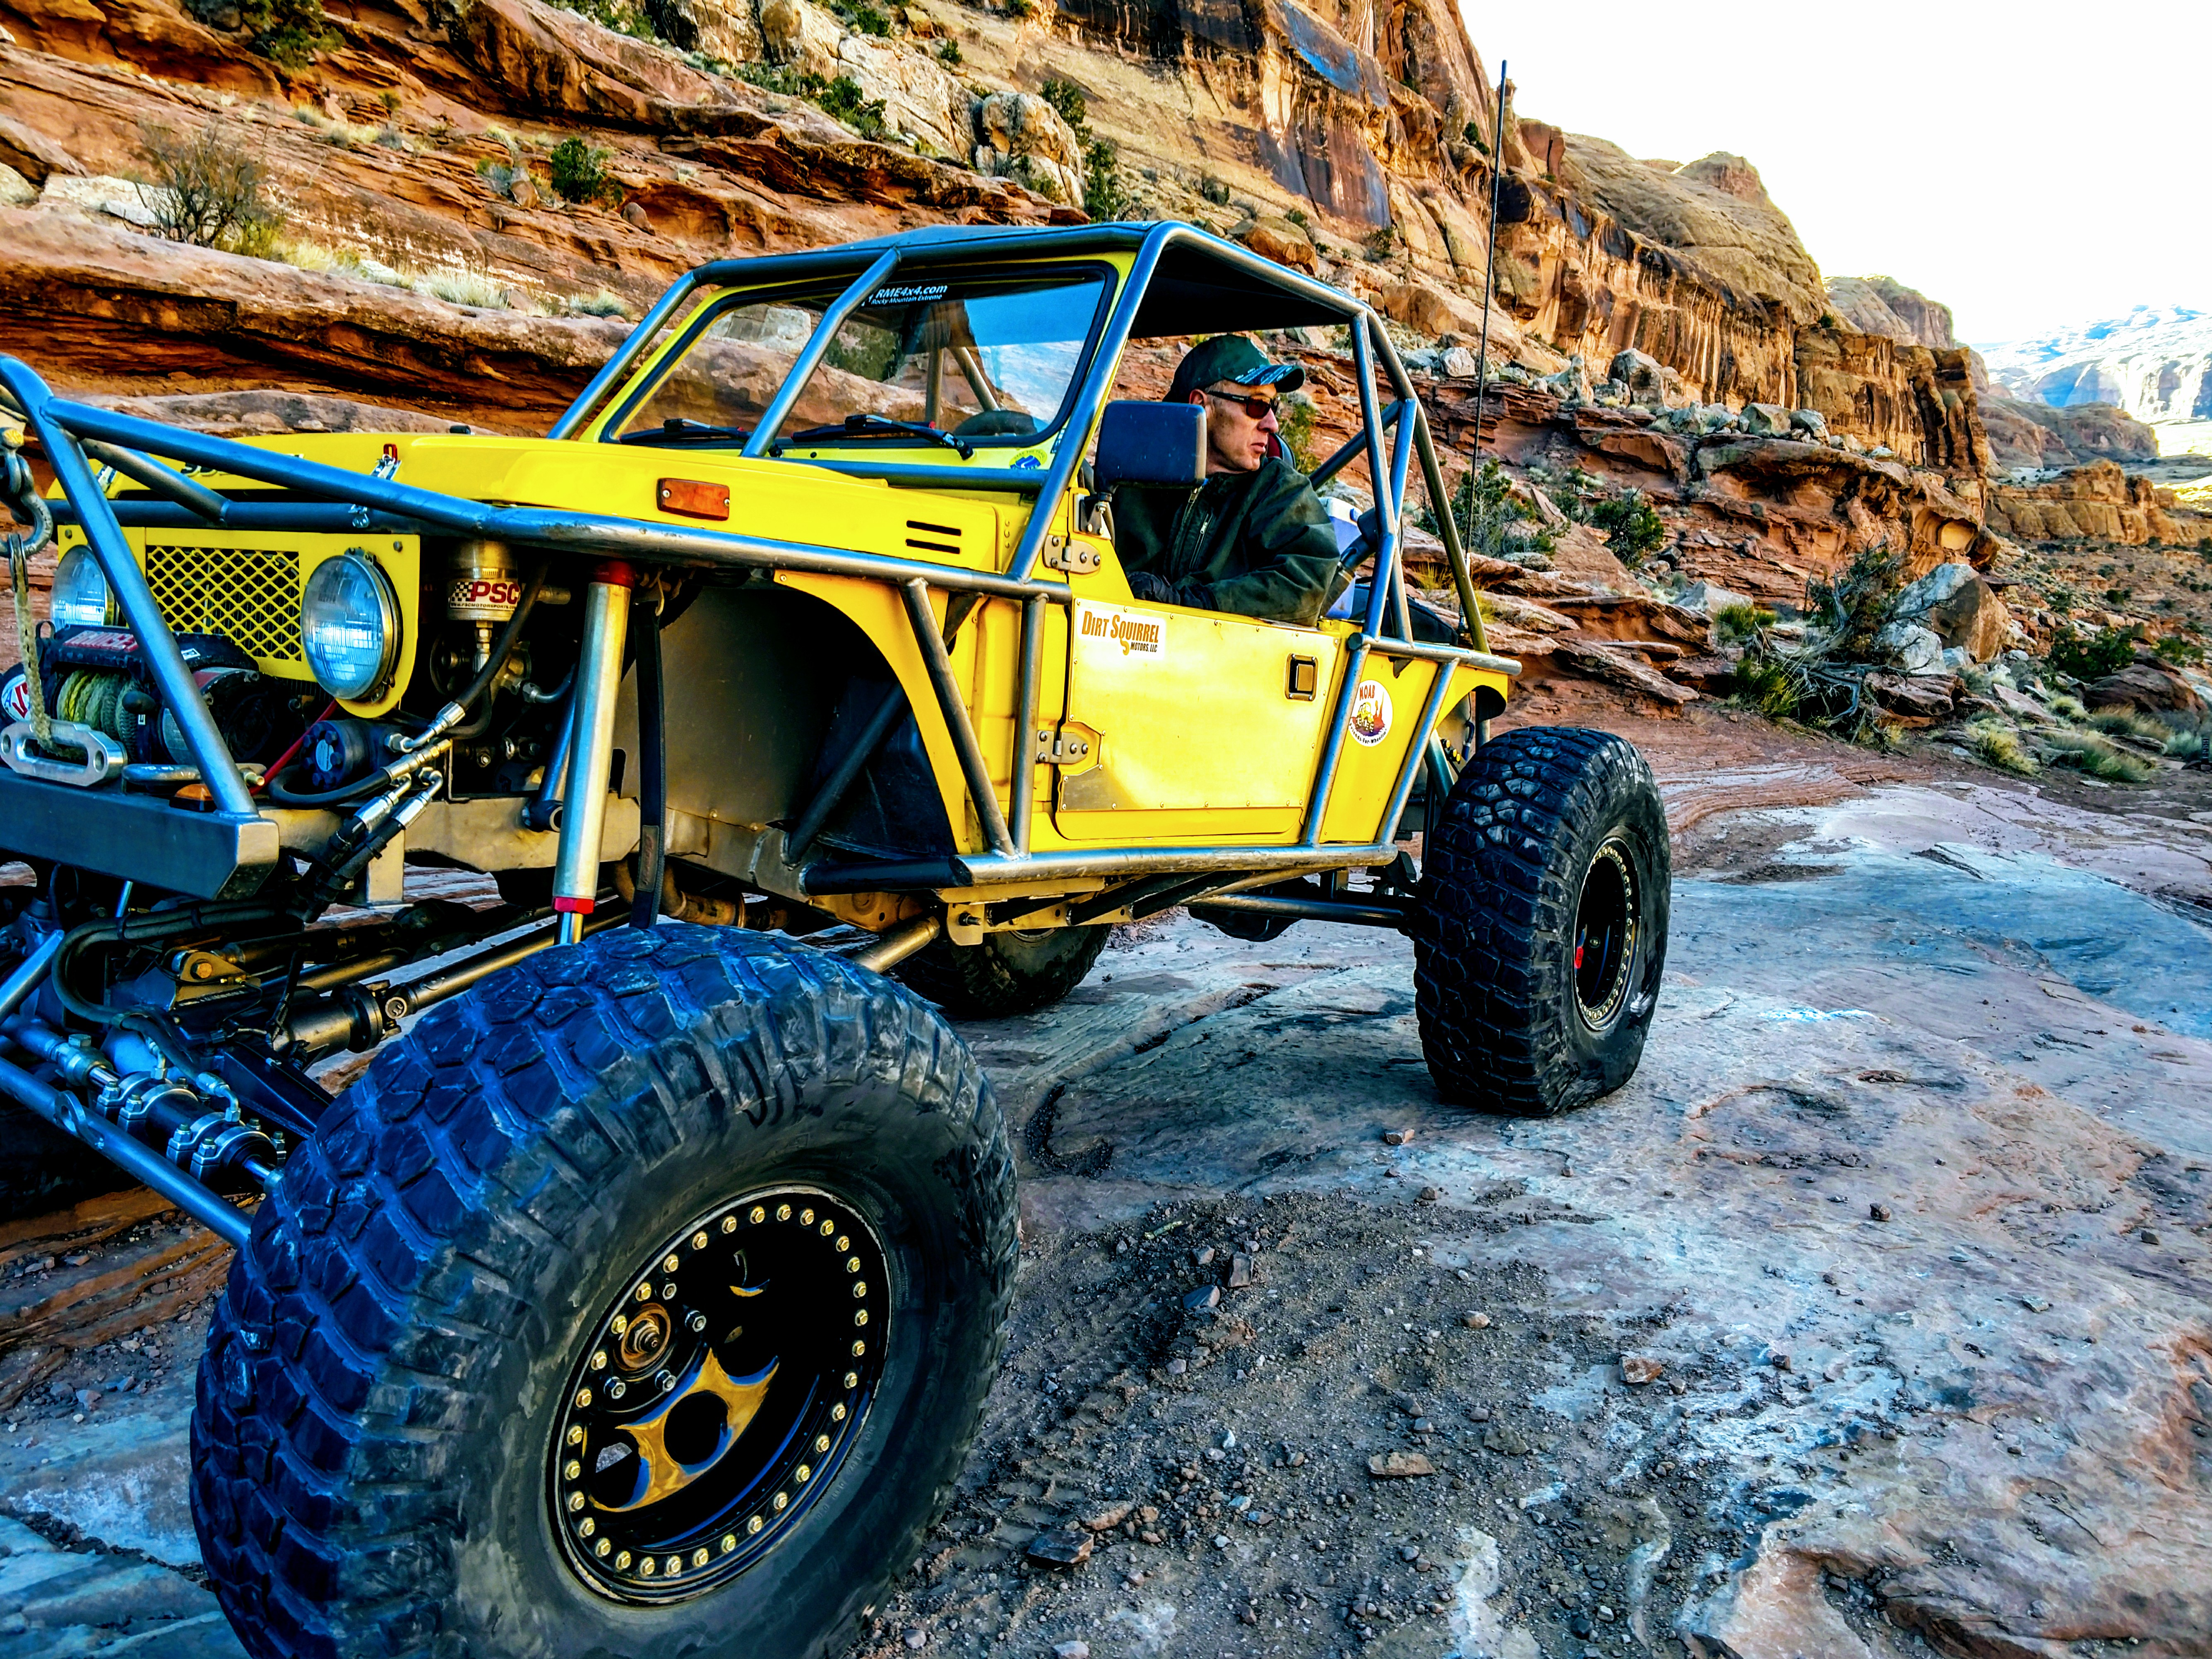 Moab Friends for Wheelin Crawls Into 2018 With Trail Project